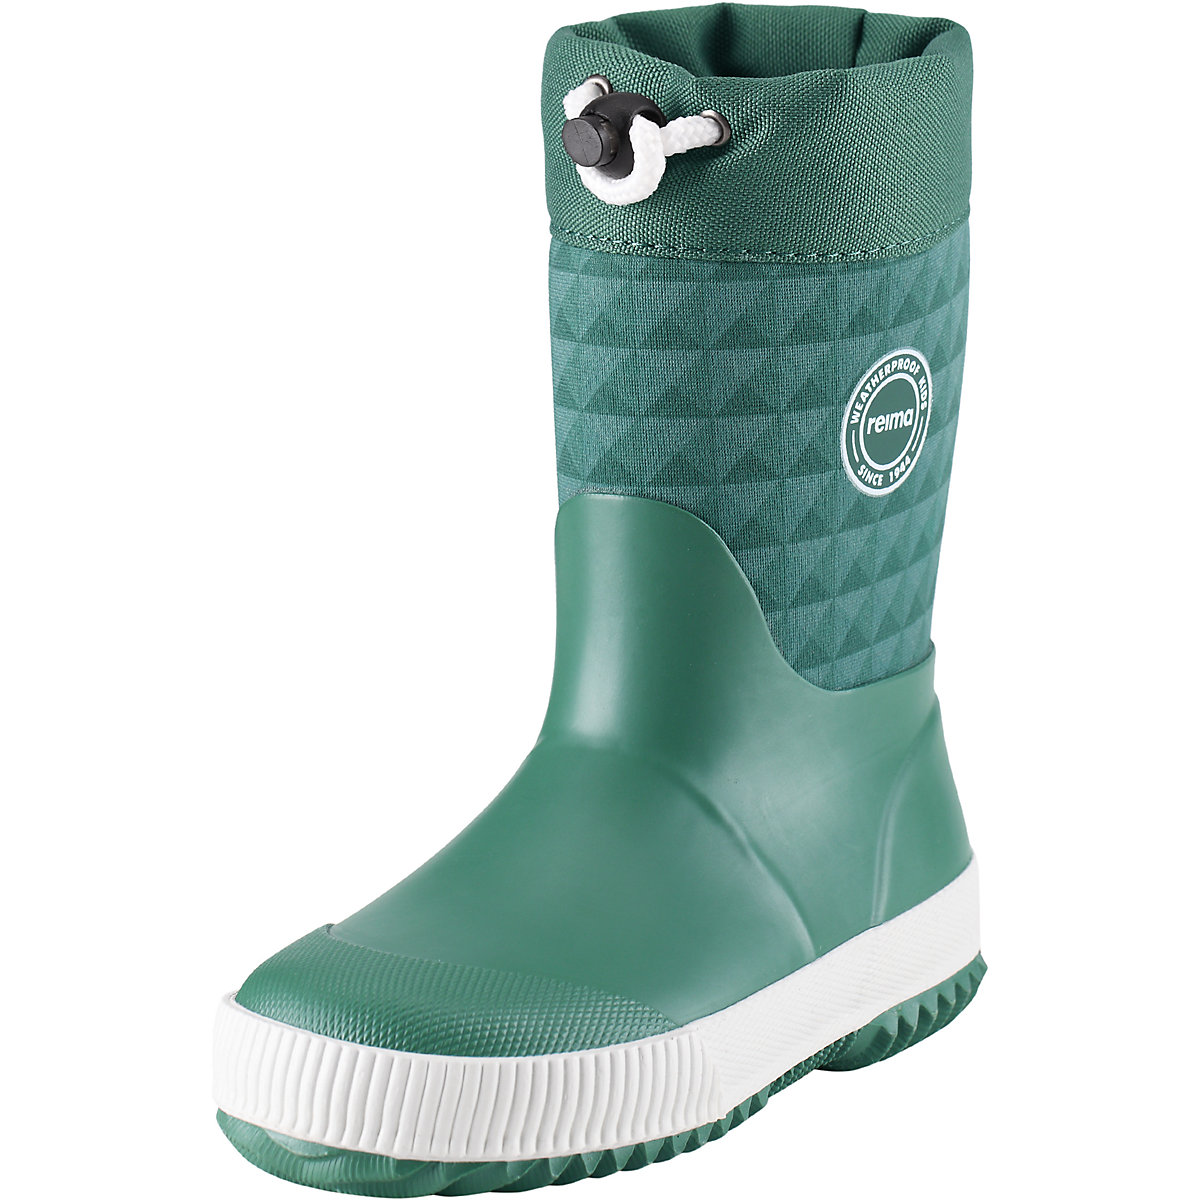 REIMA Boots 8624991 for boys and girls spring autumn boy girl  children shoes 2016 girl autumn dress 100